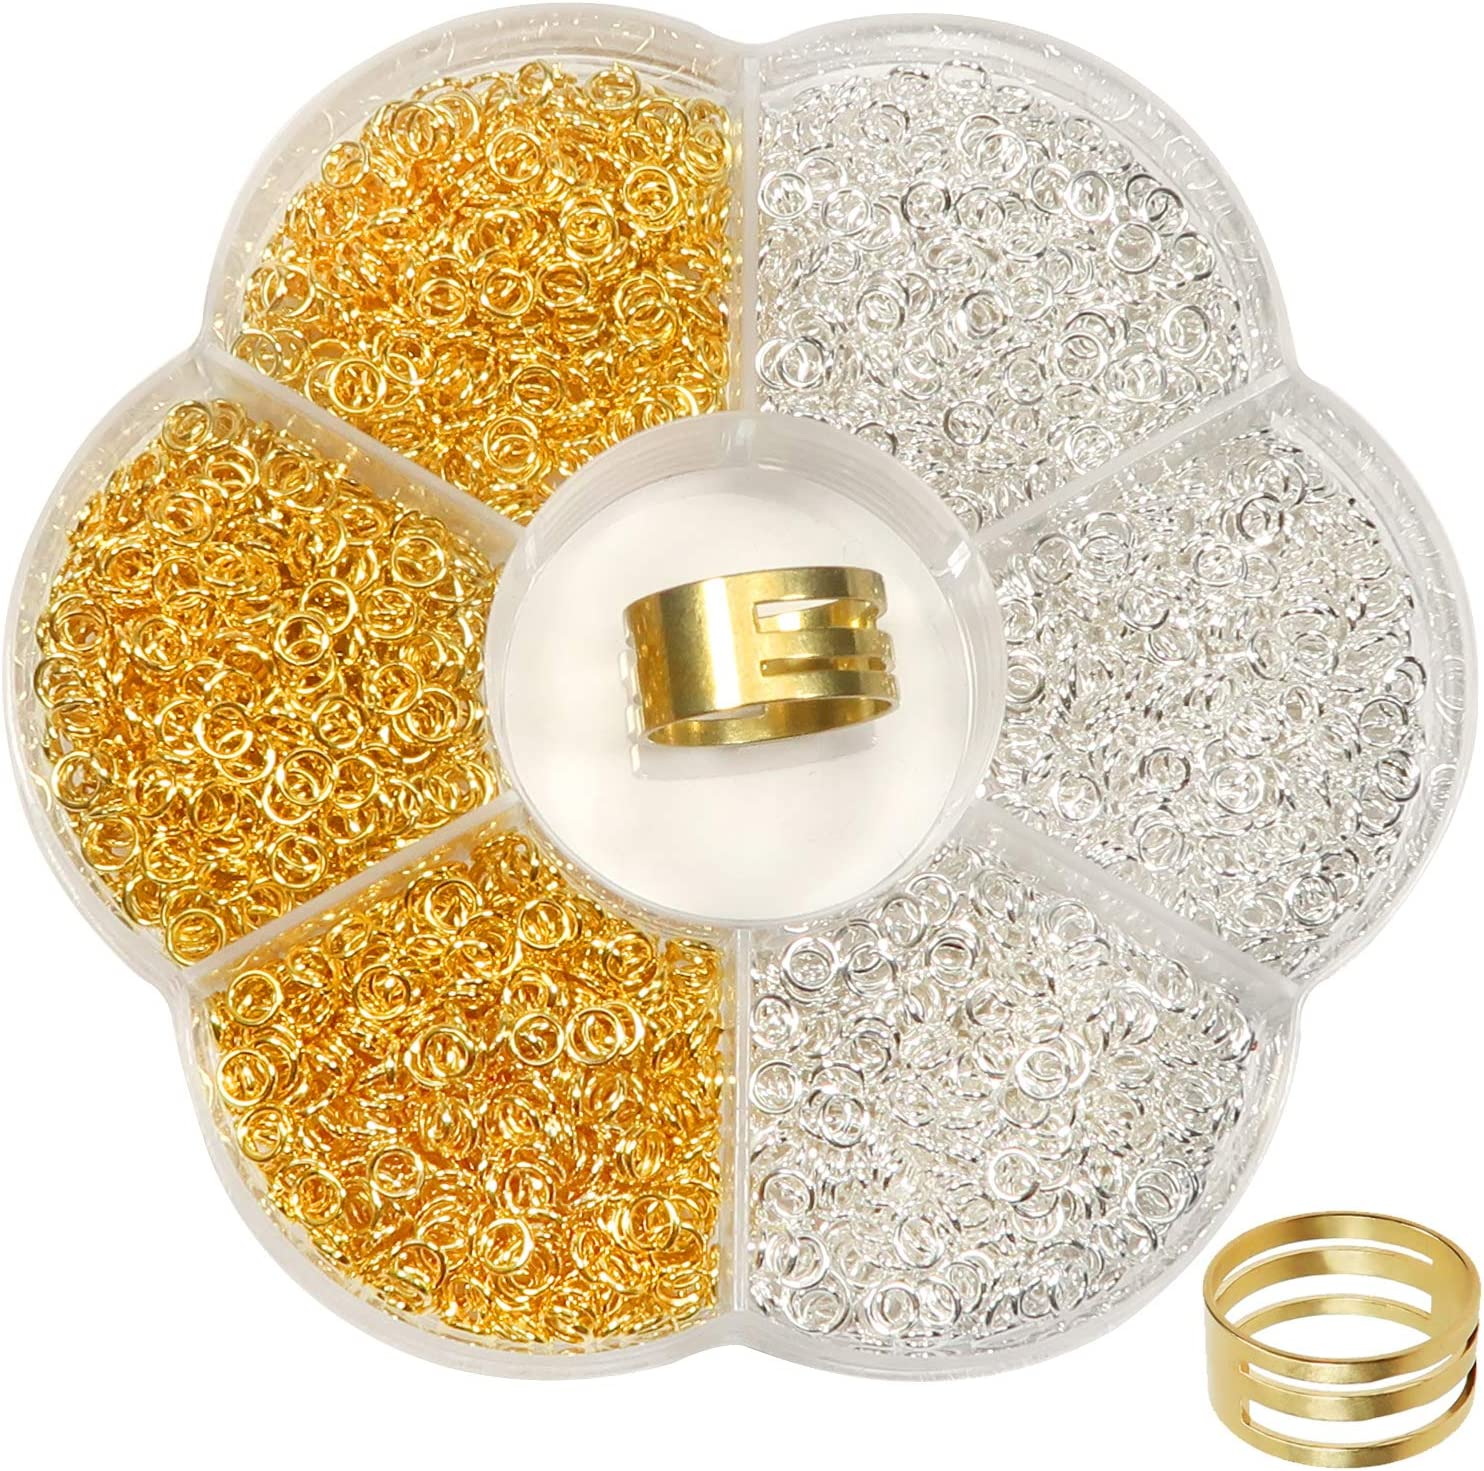 TOAOB 2400pcs Jewelry Making Jump Rings Jum 4mm Open Gold 5 Dealing full price reduction ☆ very popular Silver